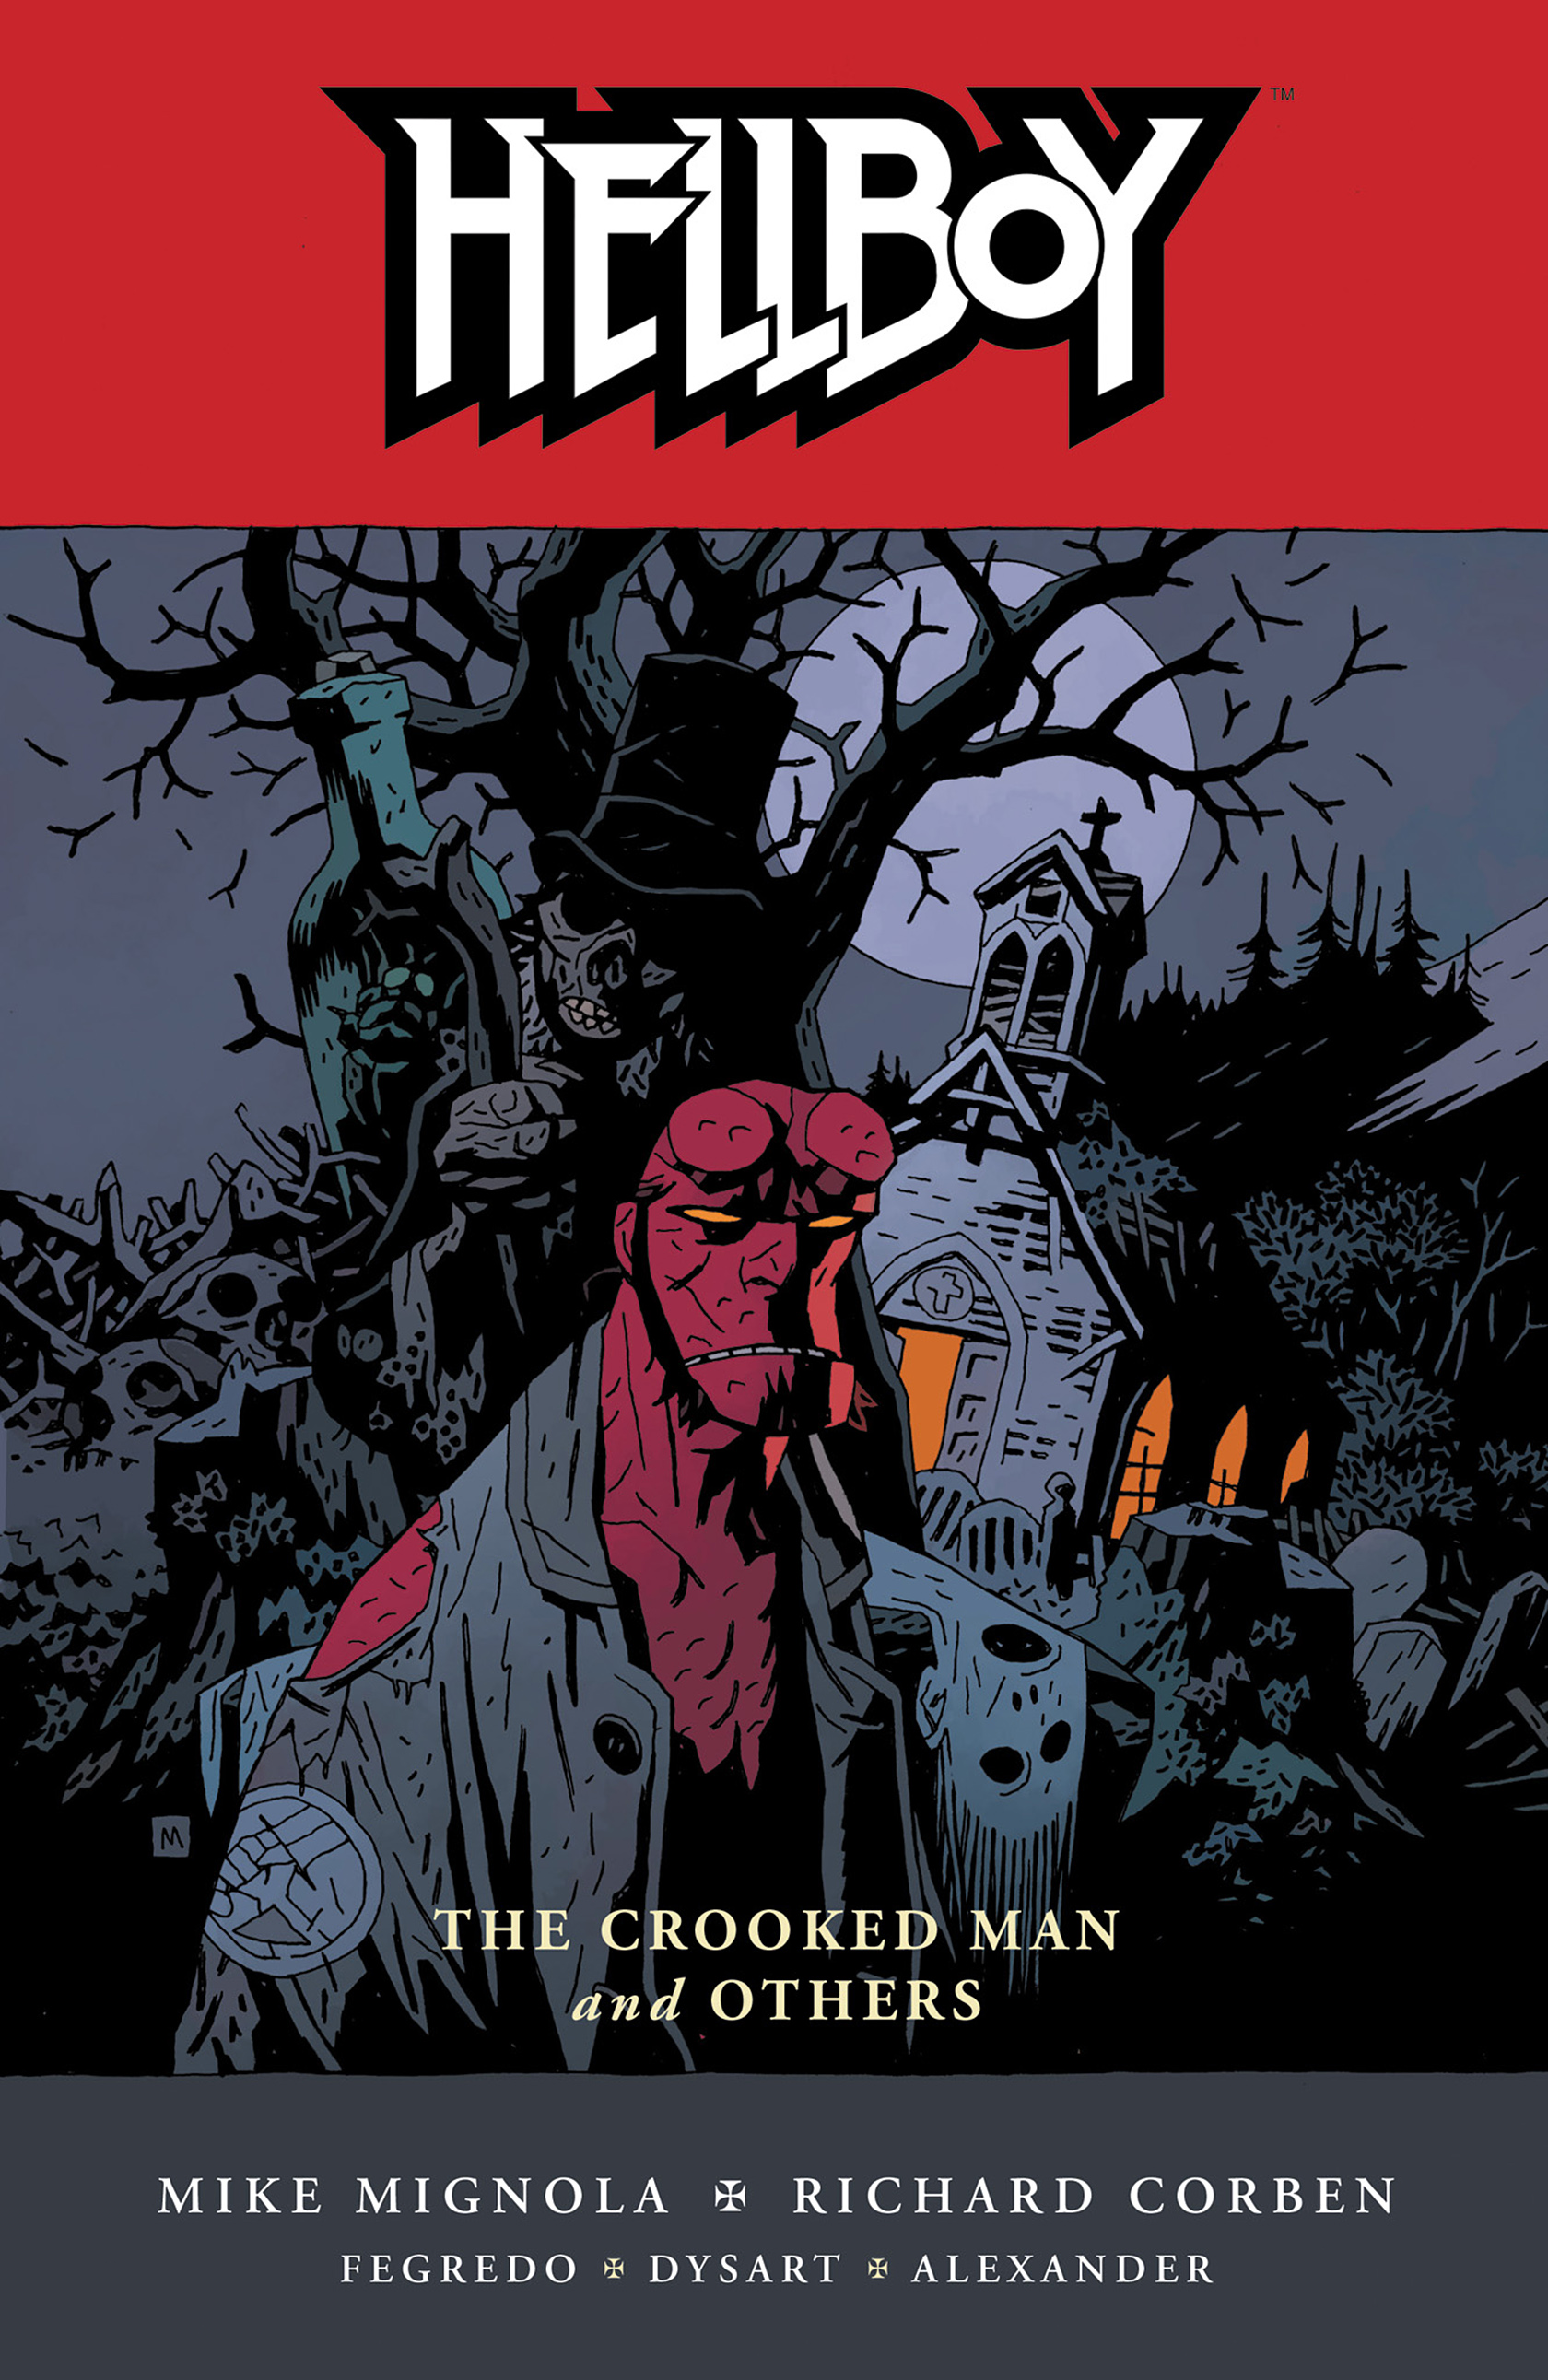 Read online Hellboy: The Crooked Man and Others comic -  Issue # TPB - 1